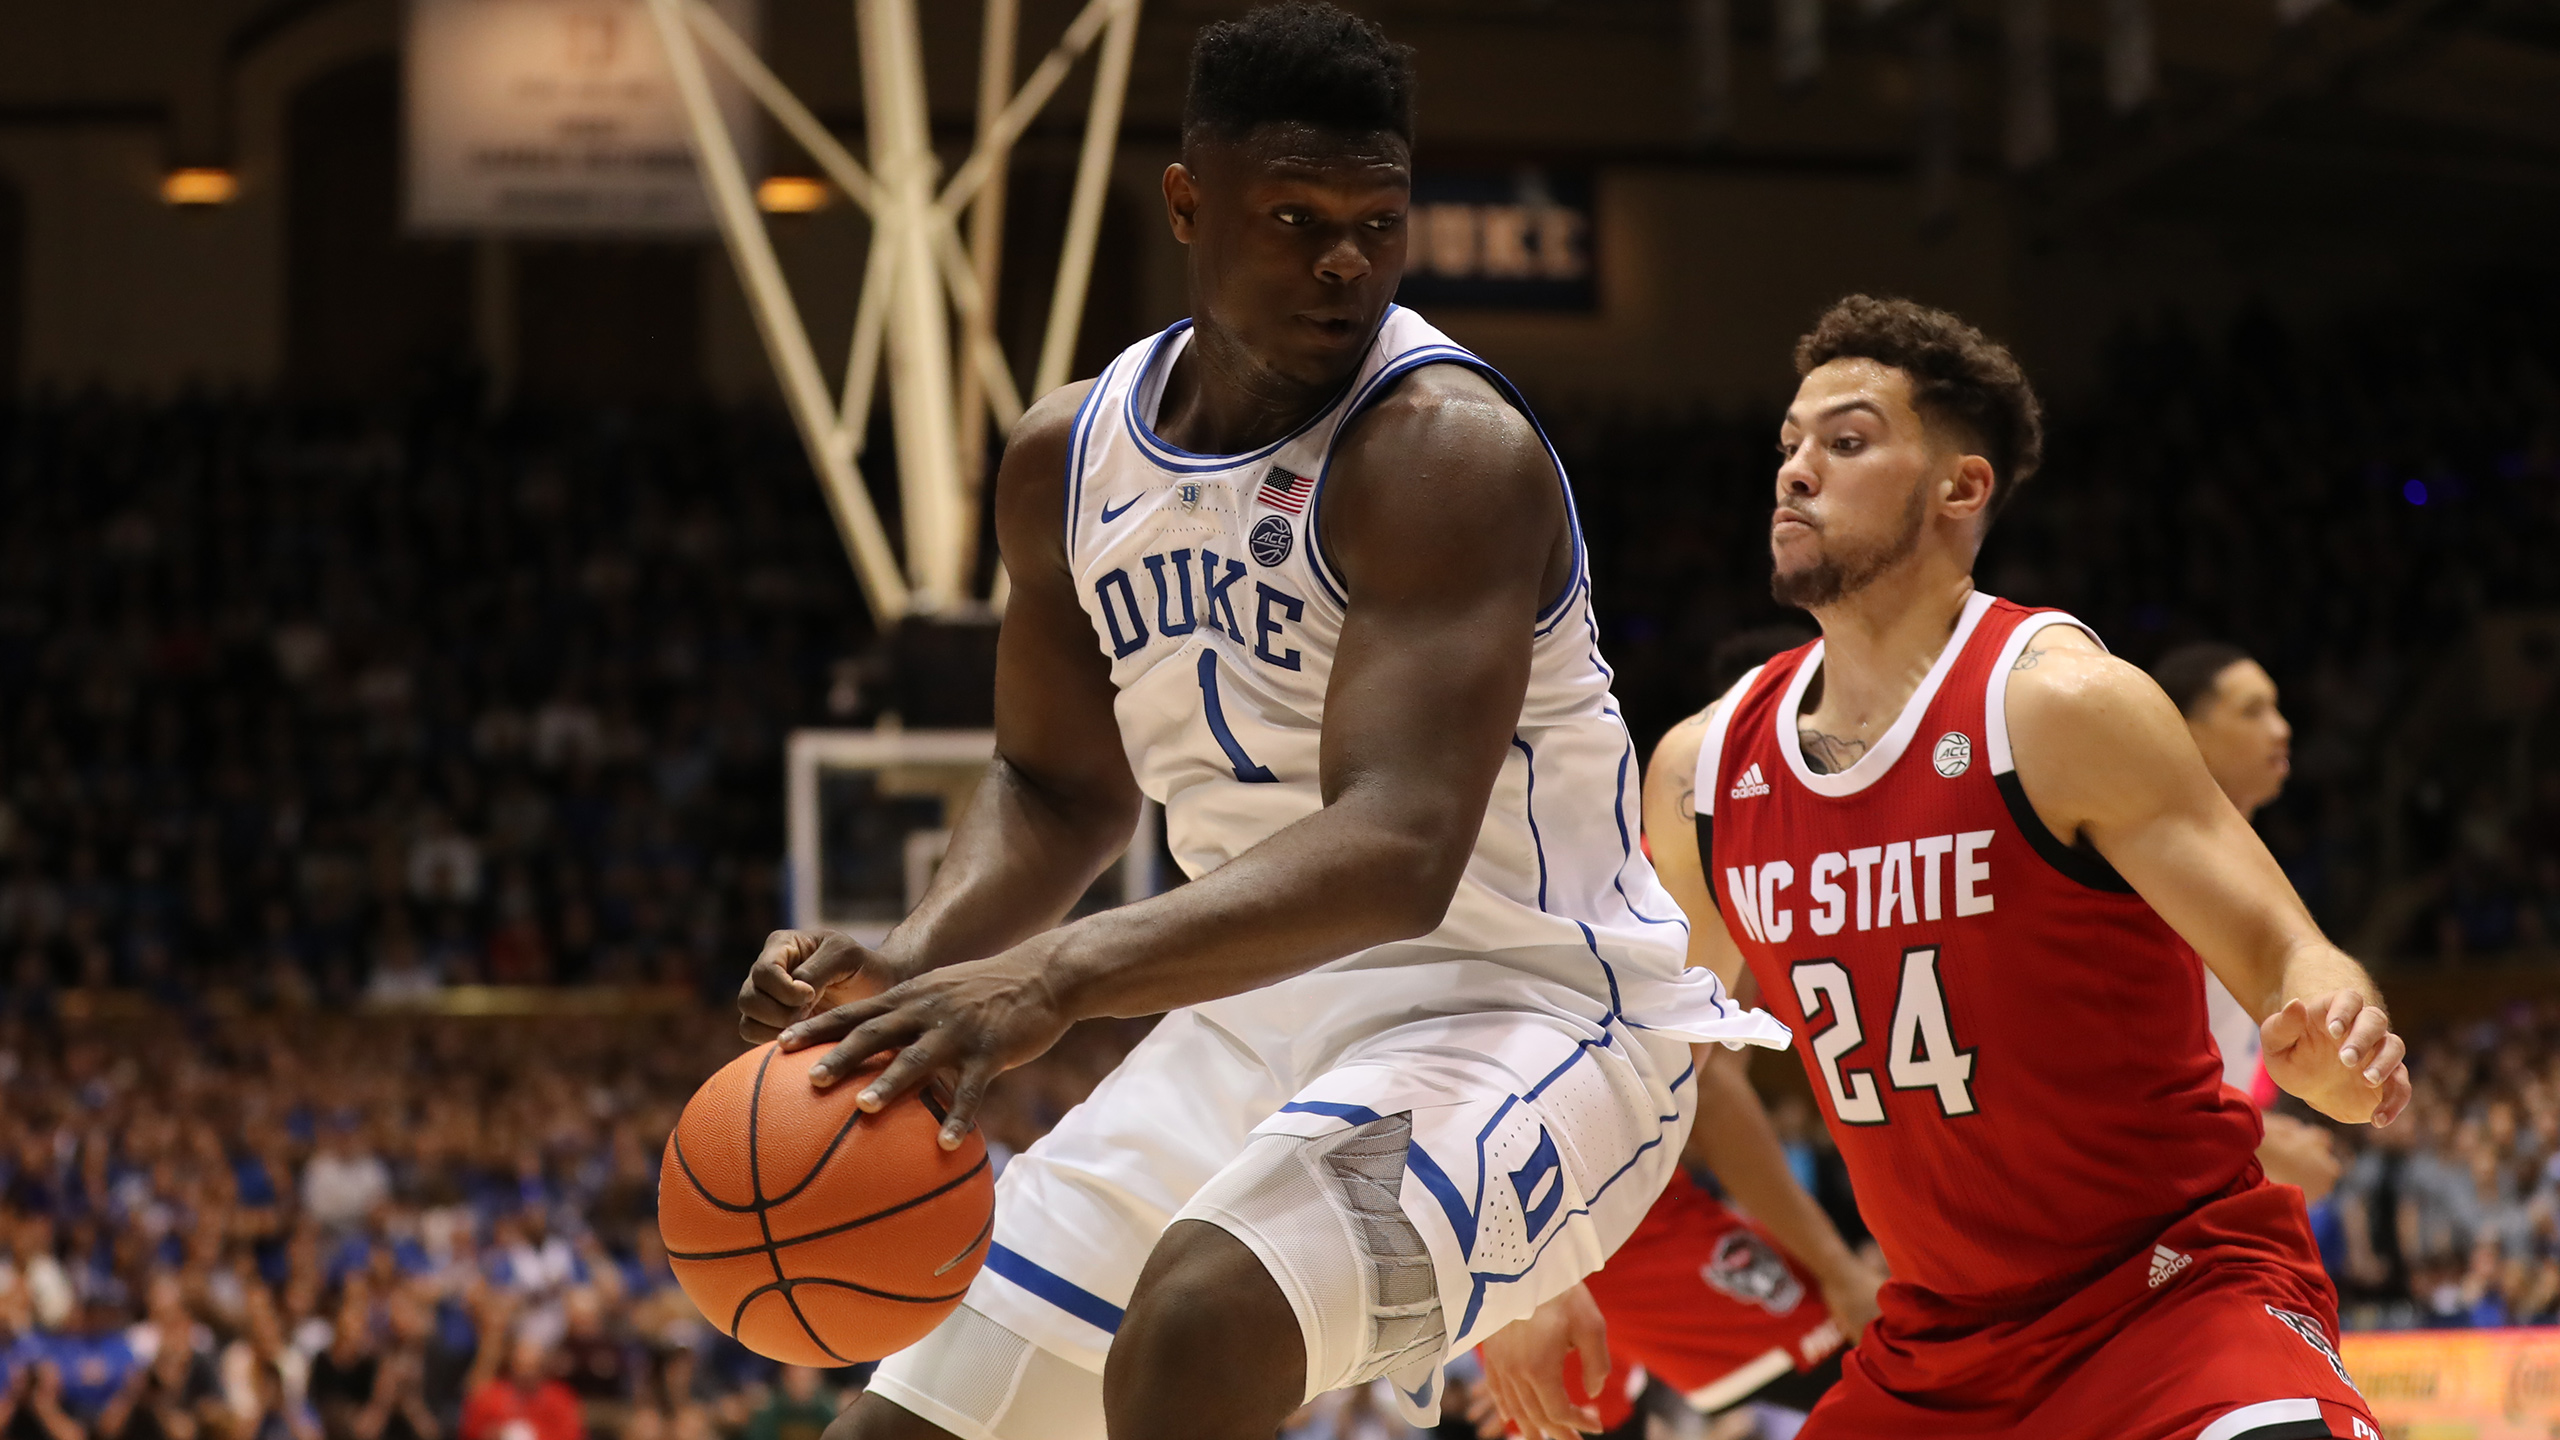 NC State vs. #2 Duke (M Basketball) (re-air)